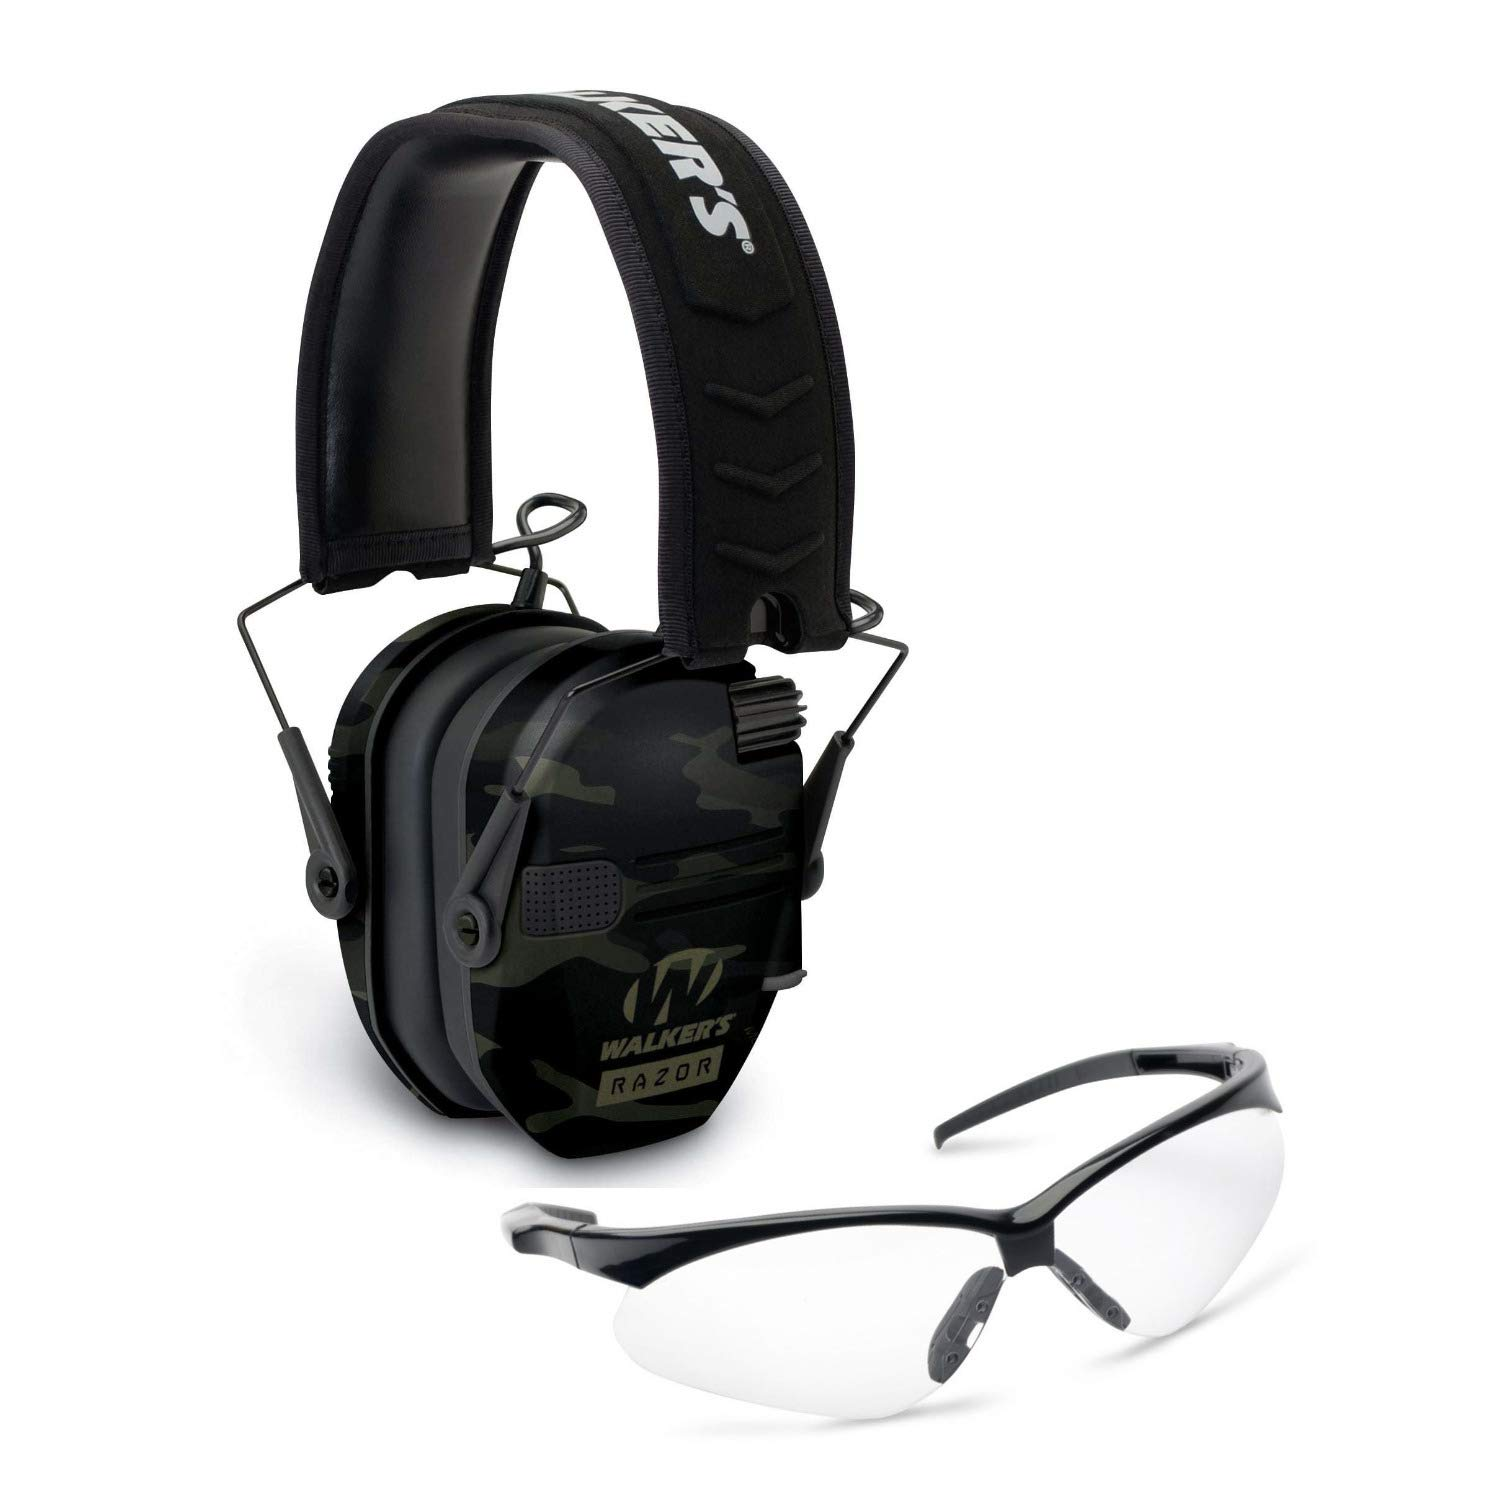 Walkers Razor Slim Electronic Hearing Protection Muffs with Sound Amplification and Suppression and Shooting Glasses Kit, Multicam Camo, Grey by Walkers (Image #1)